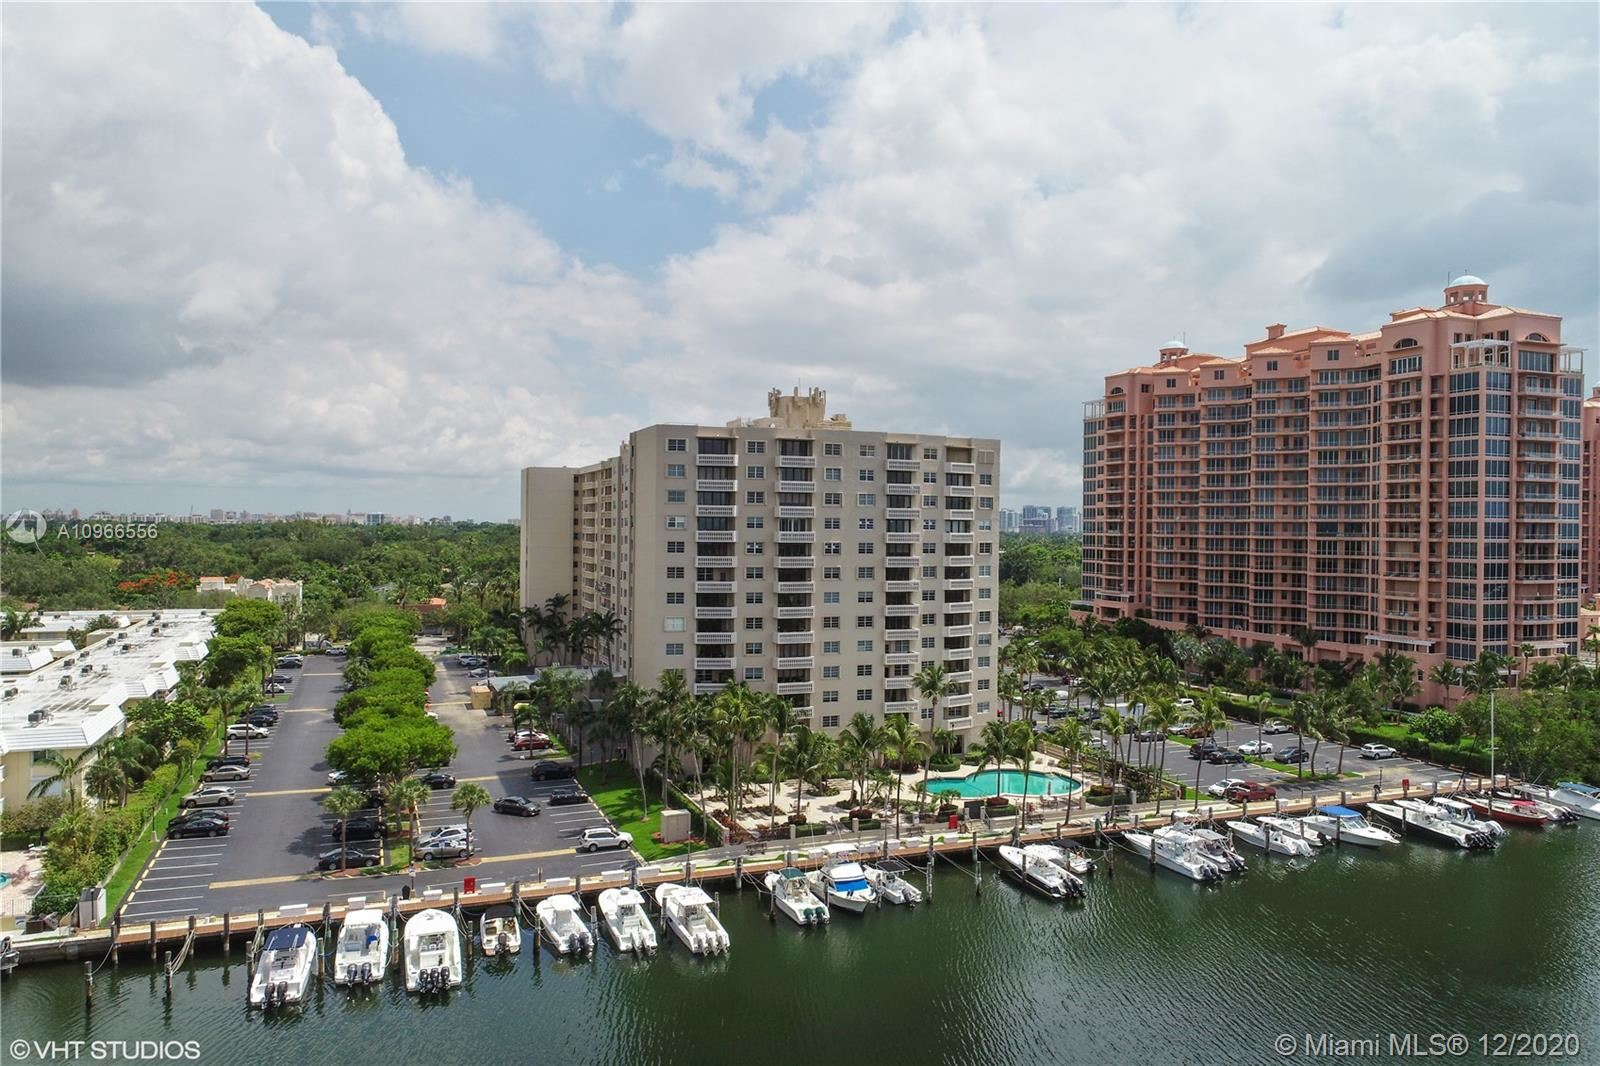 90 Edgewater Dr #816, Coral Gables, FL 33133 - #: A10966556